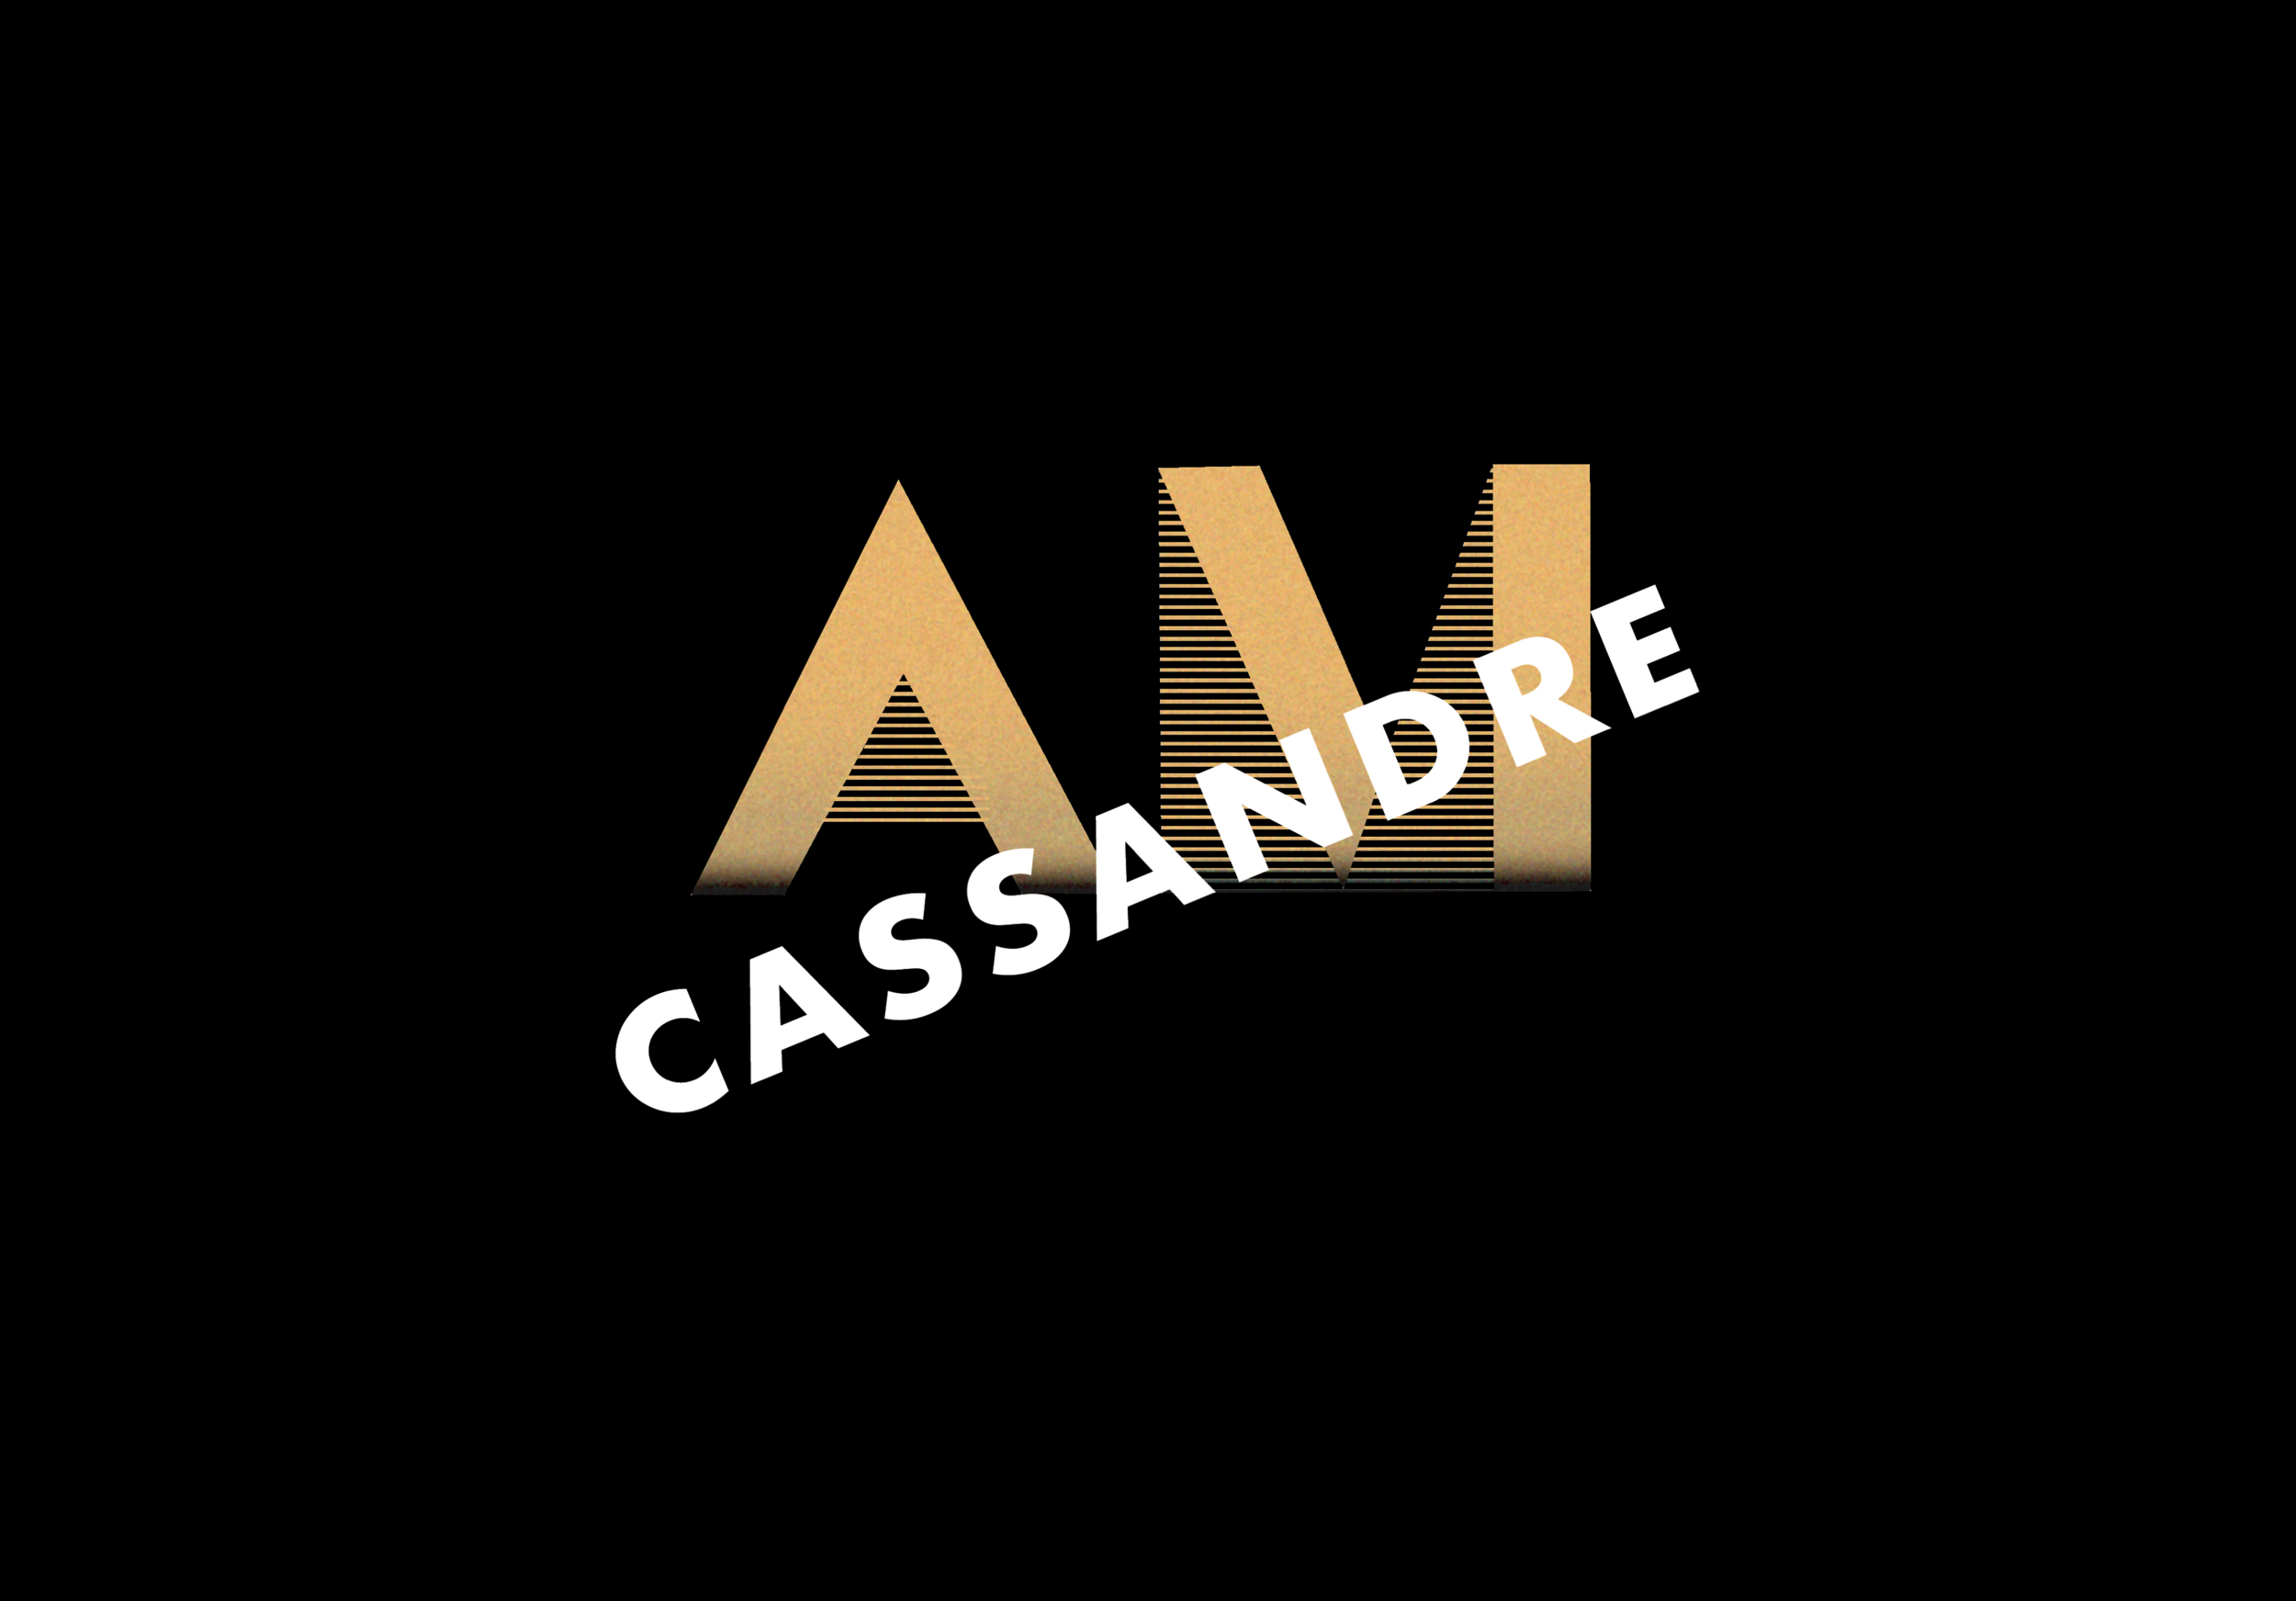 - A.M. CASSANDRE ACCORDIONFor my Graphic Design History course, taught by Douglass Scott, we were tasked to design an accordion about a famous designer's life, work, and impact. I was assigned A. M. Cassandre and I chose to design layouts and shapes that resembled his geometric and airbrushed style.2017